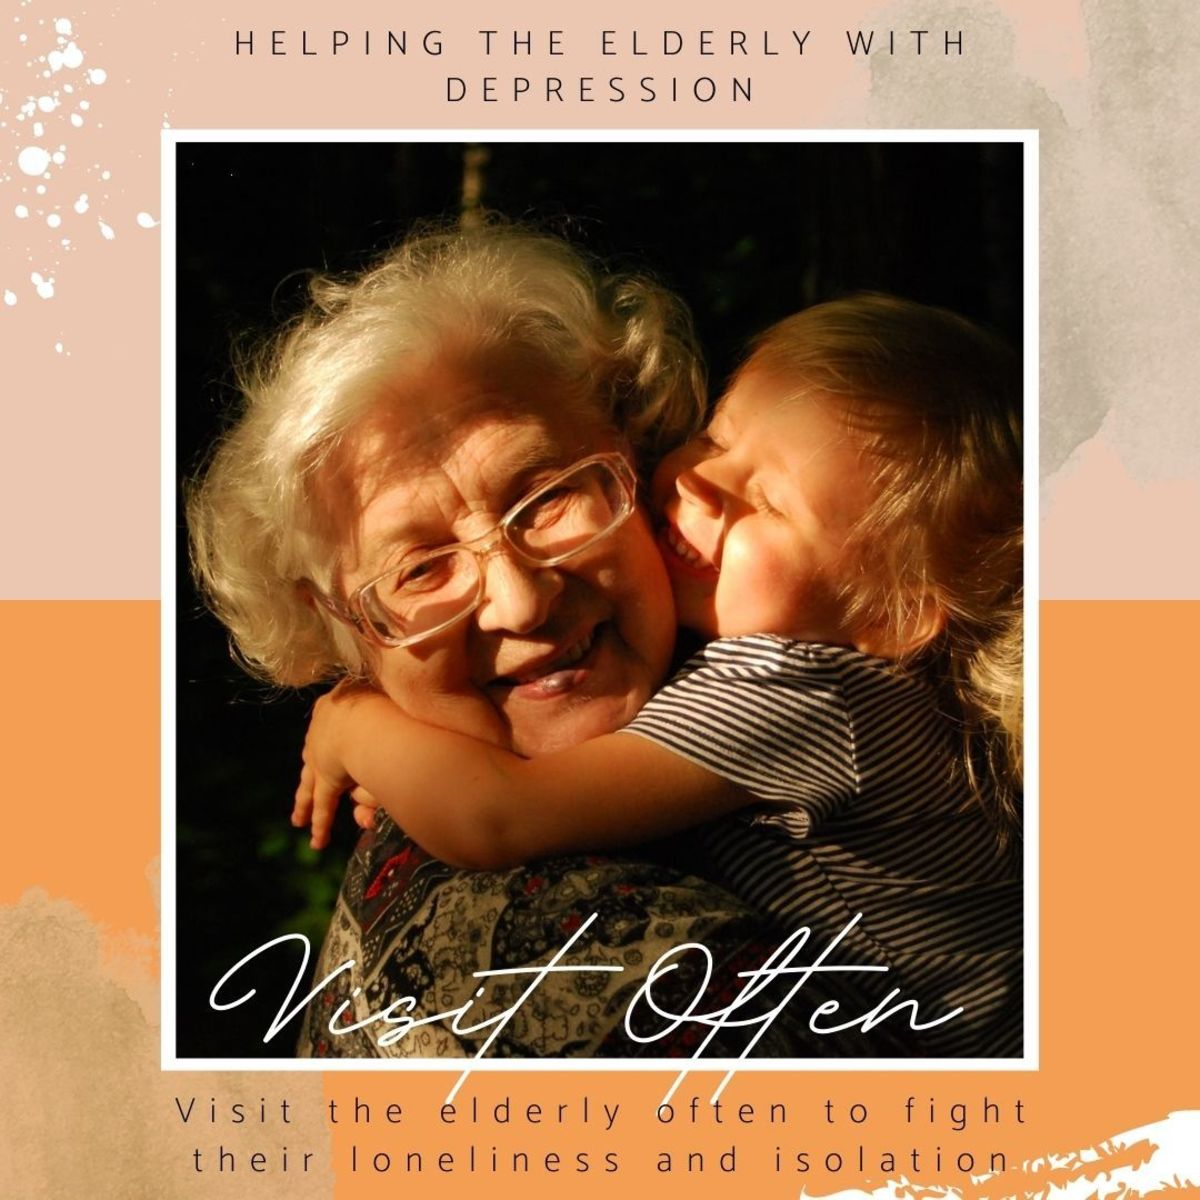 Visit the elderly often to fight their loneliness and isolation